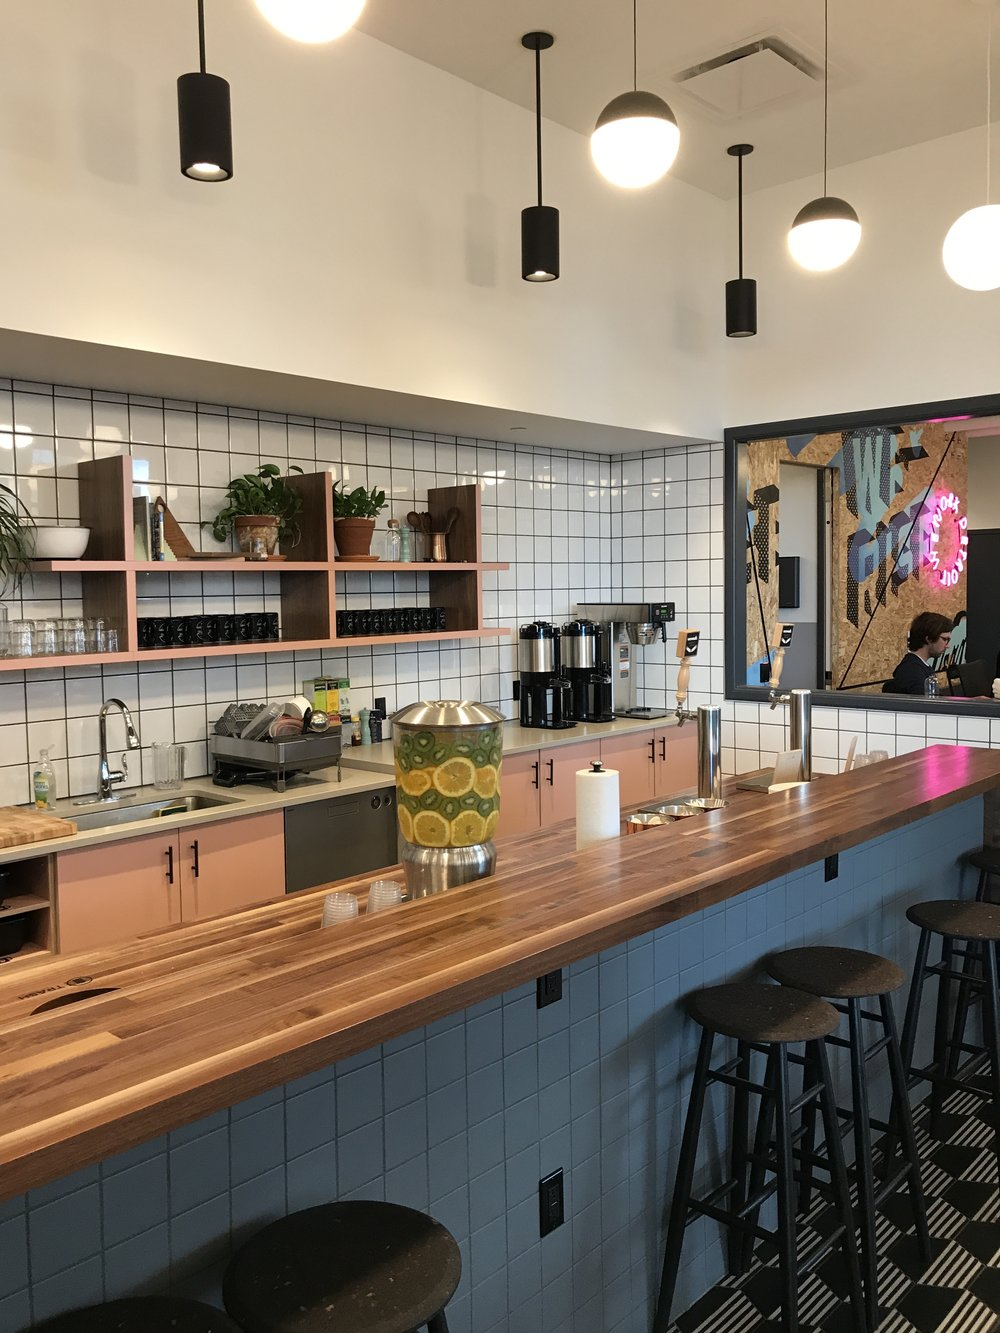 Much like people's homes, the Kitchen is an essential part of the community. Front and center, and in this particular set up – Craft Brew on tap 24/7!